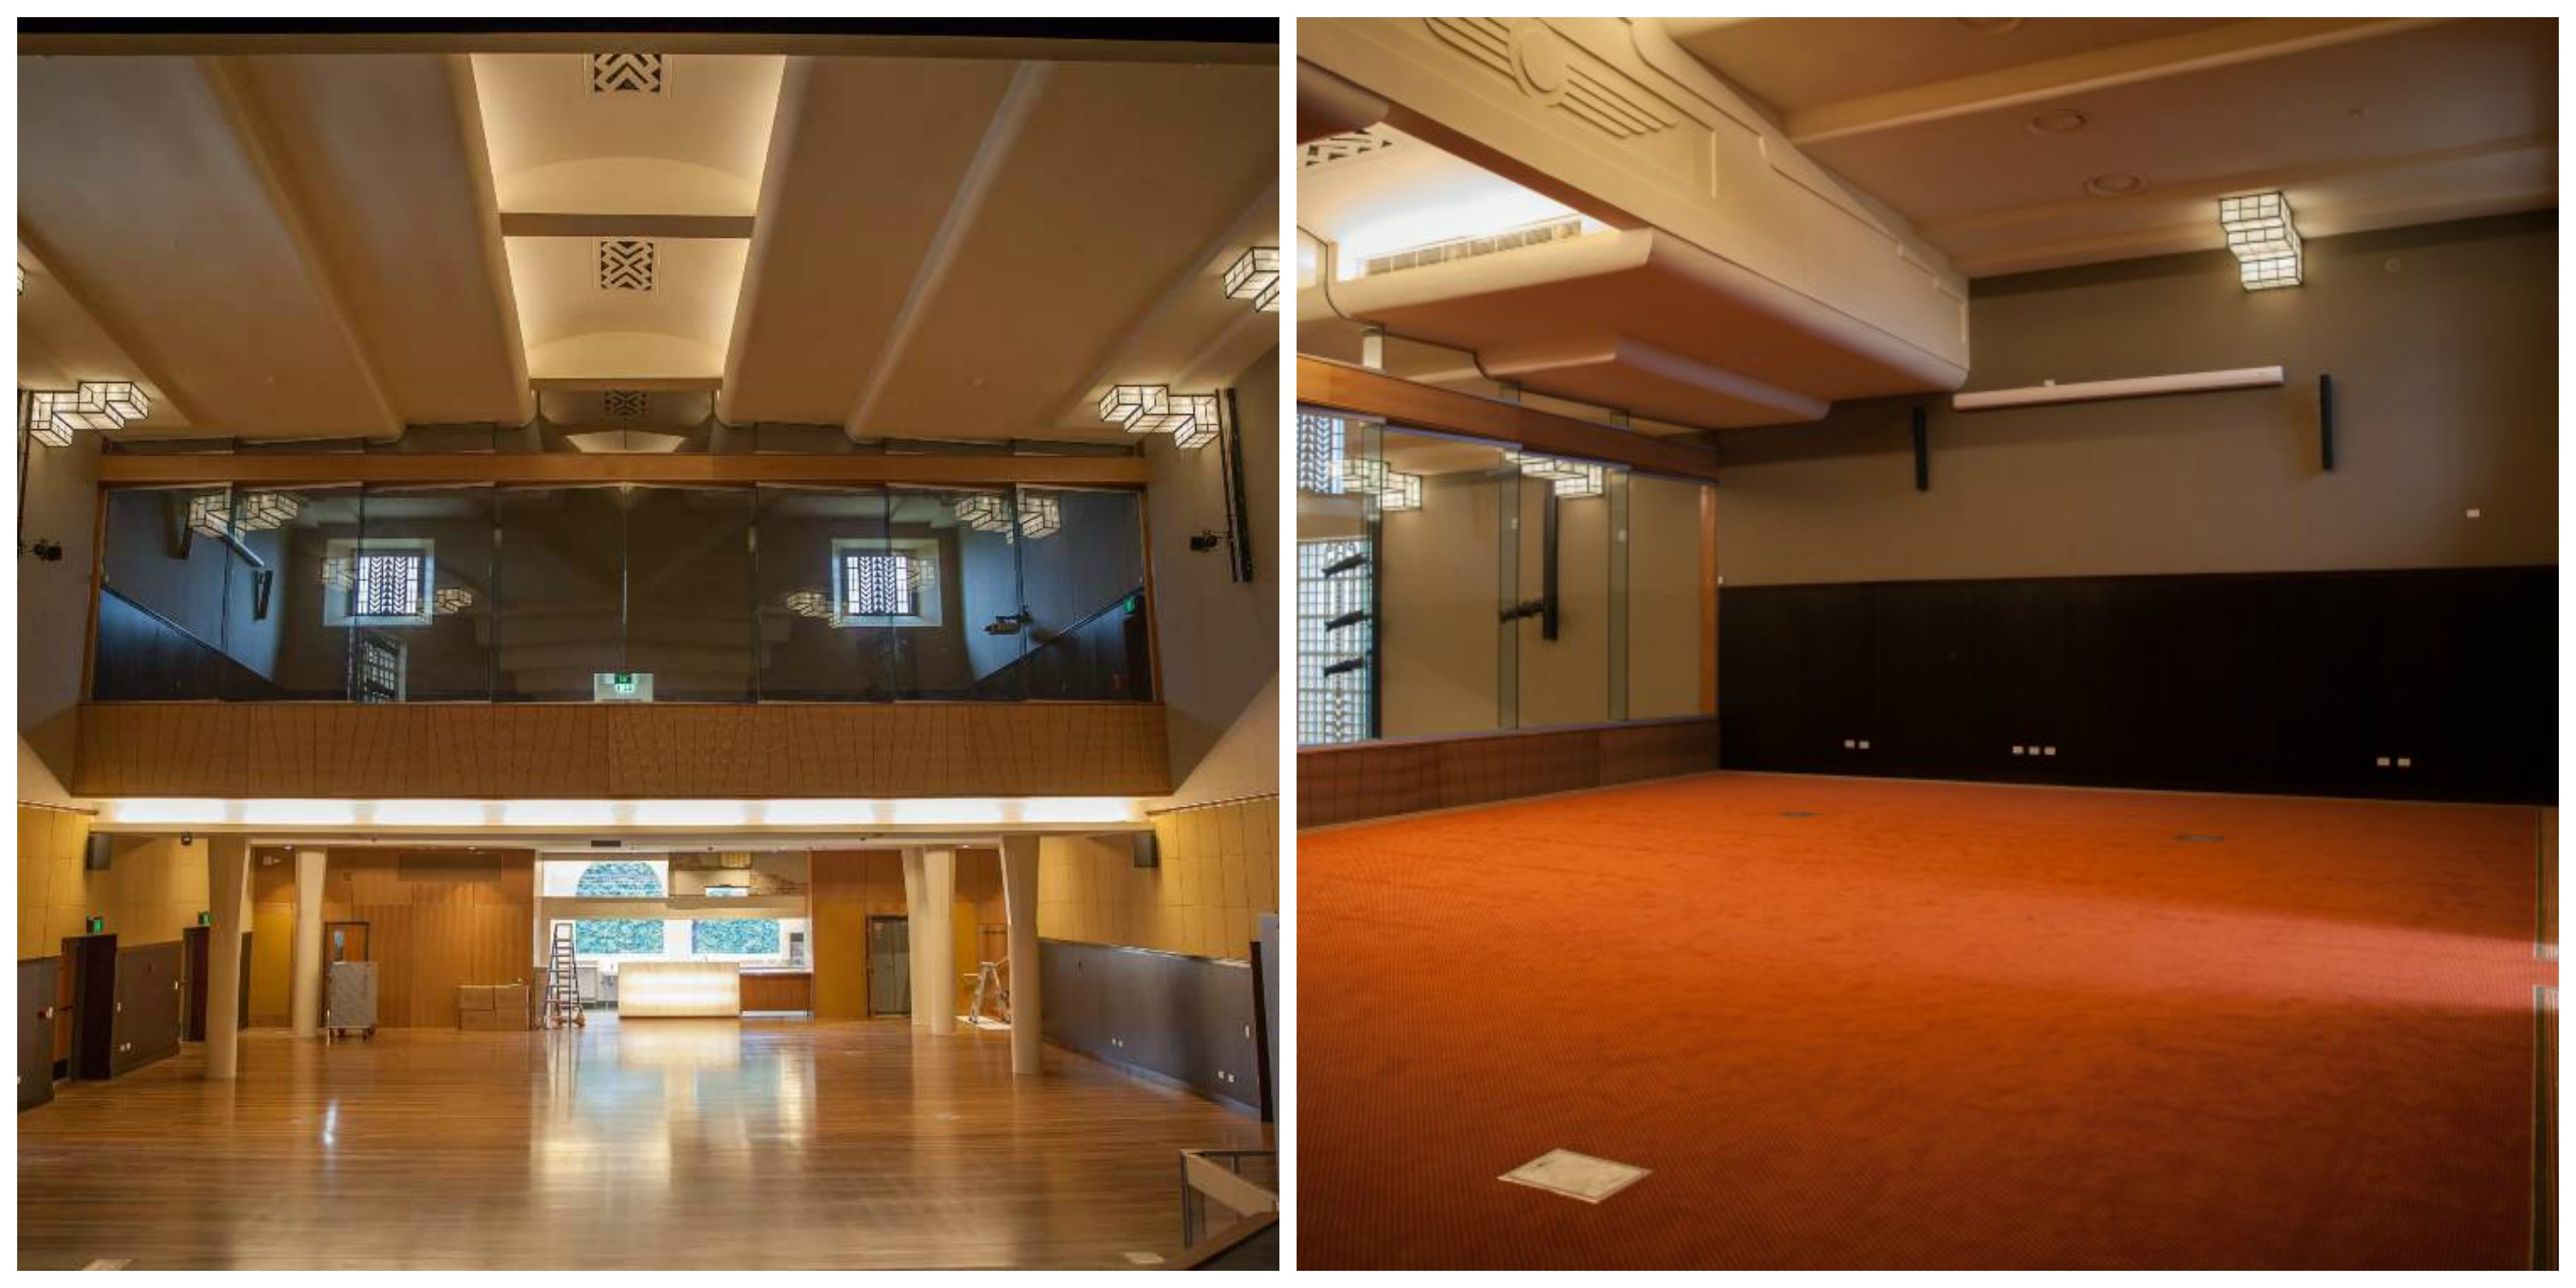 Autex Etch installers, Toowoomba Town Hall renovation, acoustic paneling, Master Flooring Solutions